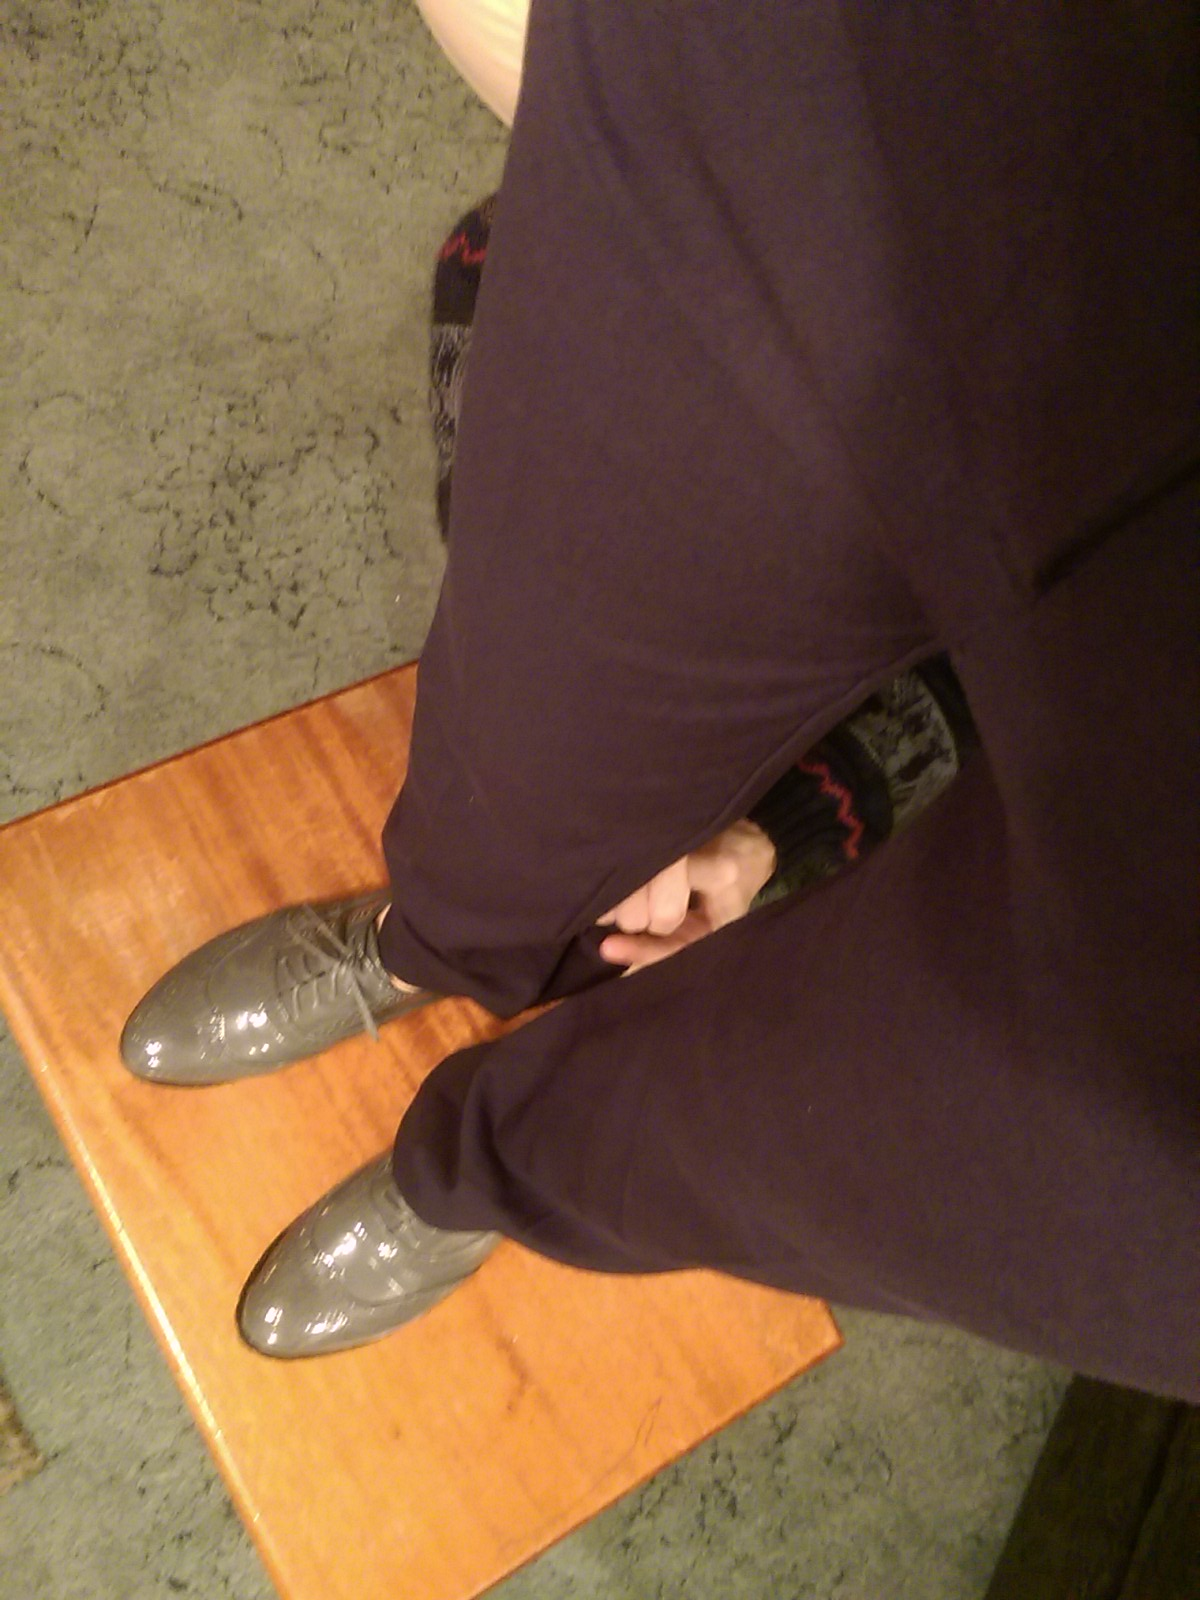 View from above of someone's legs with navy trousers, being adjusted